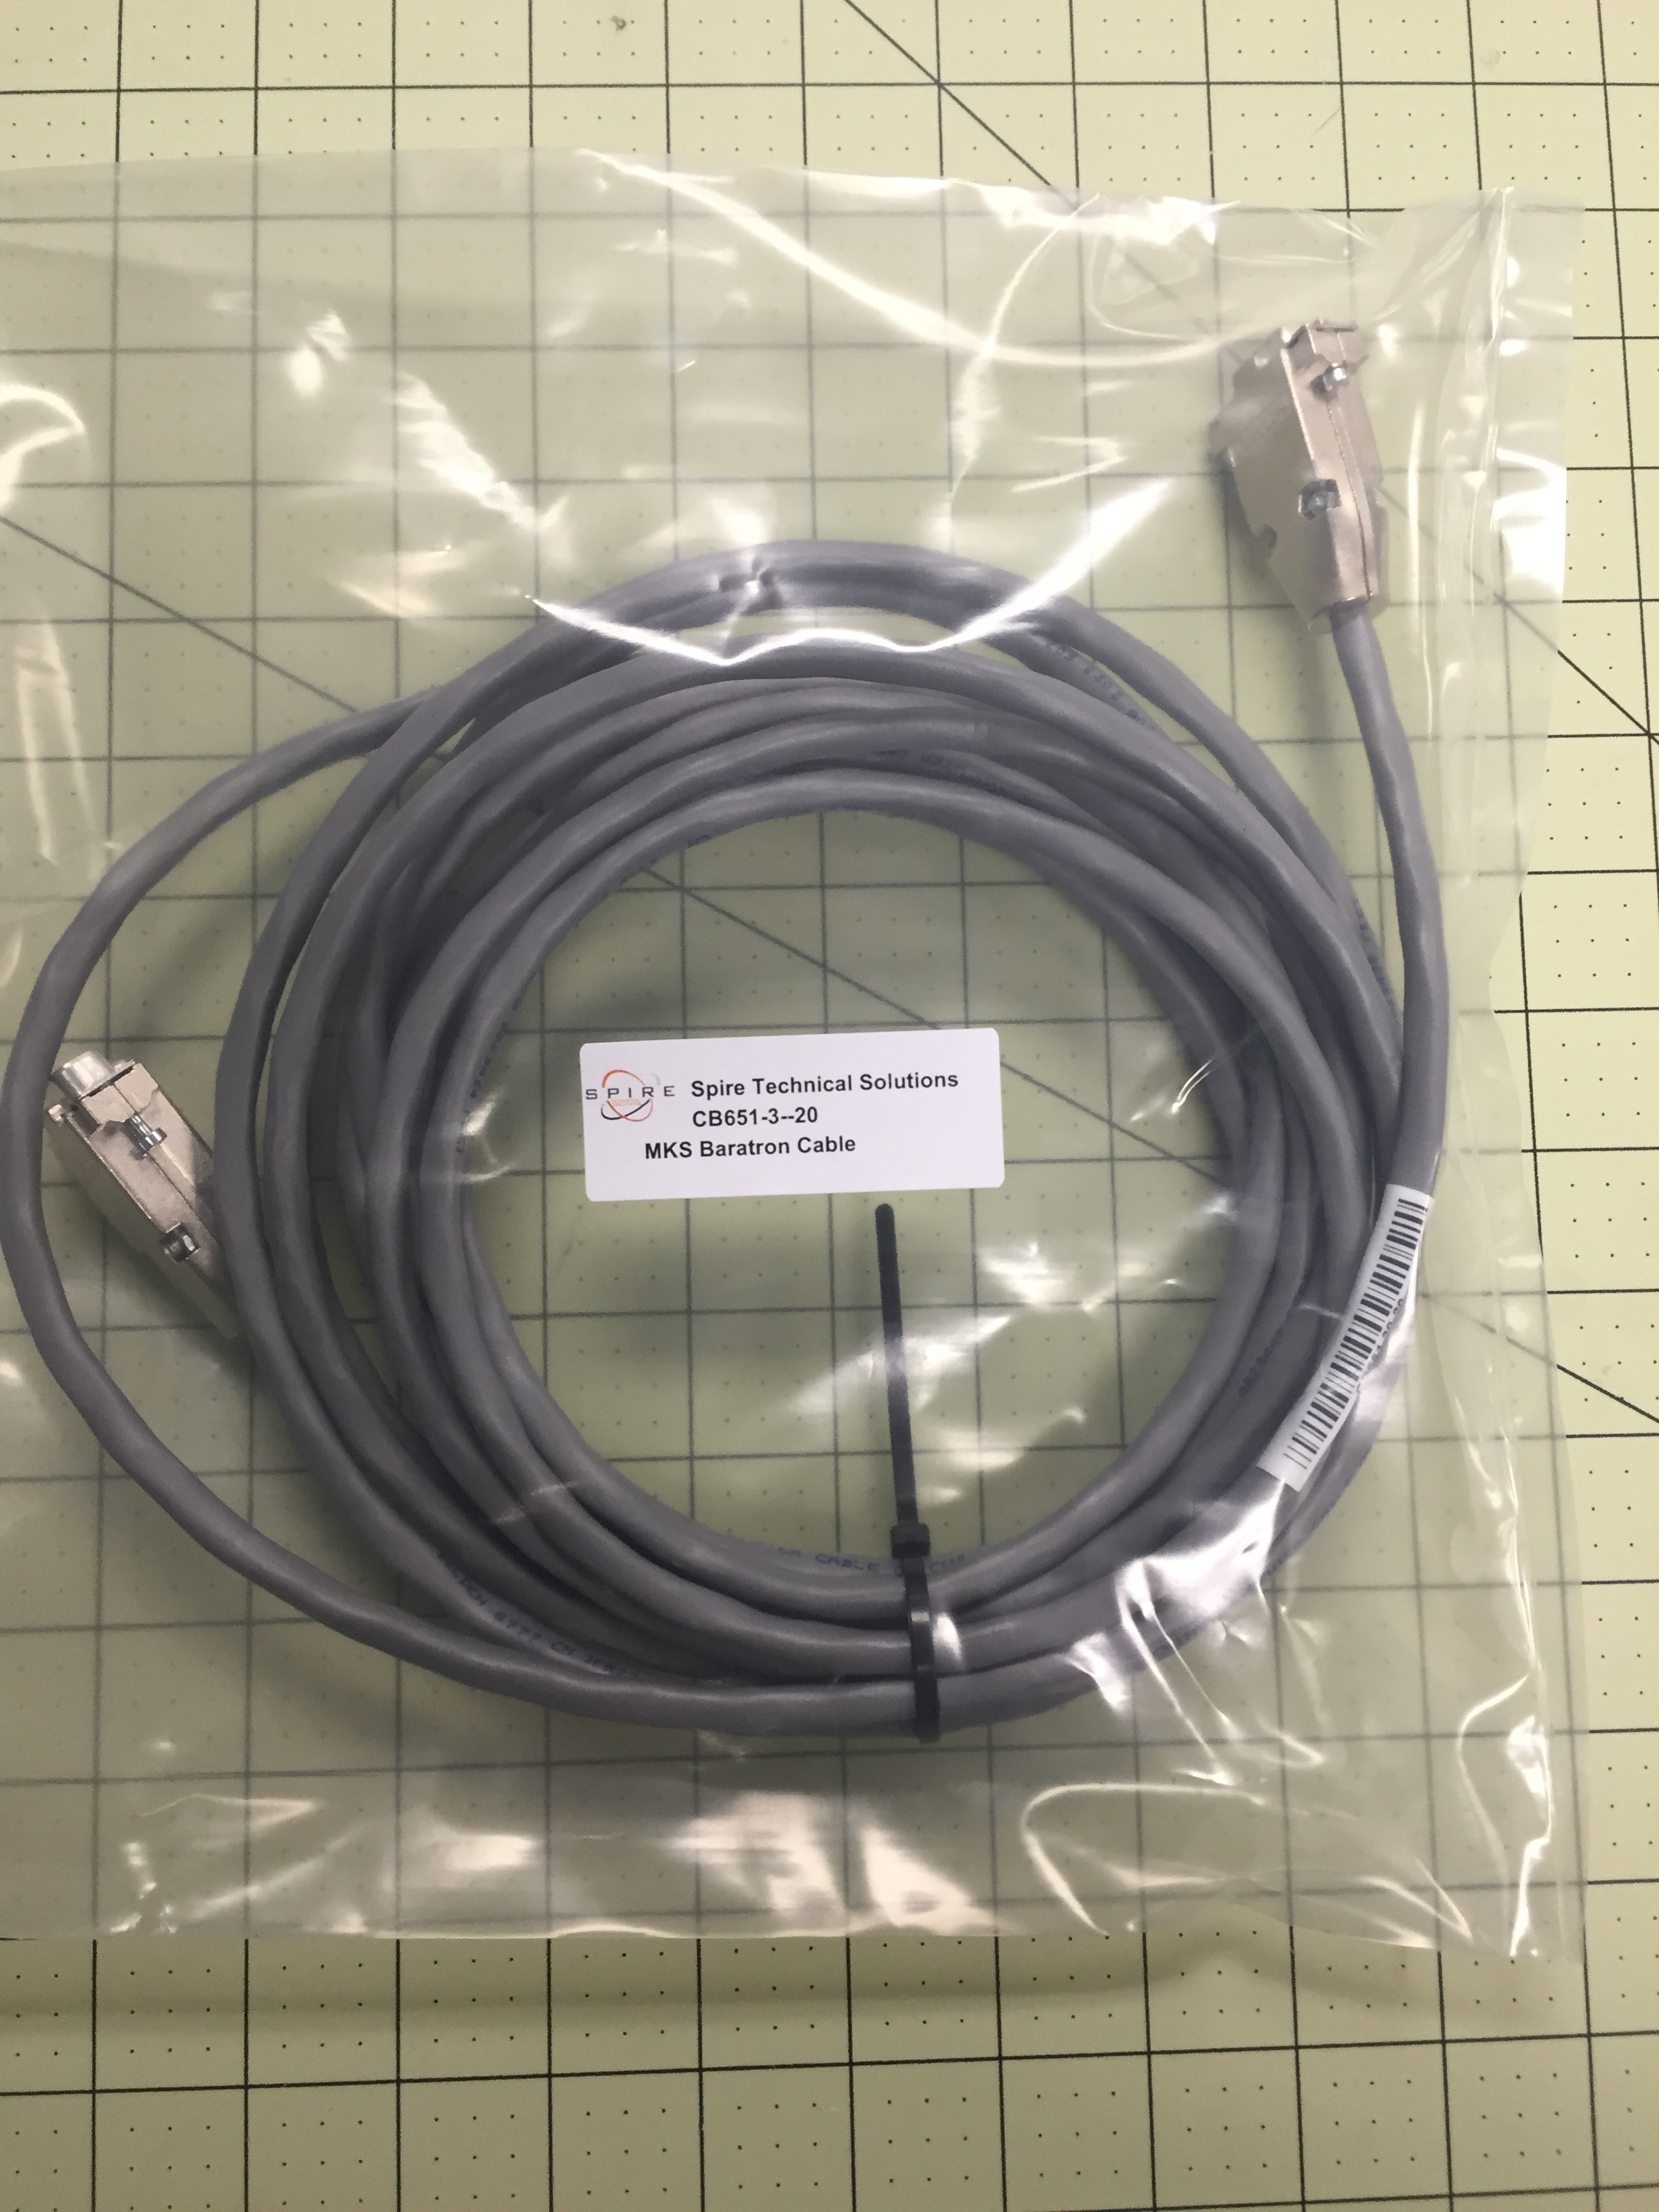 MKS Baratron Cable